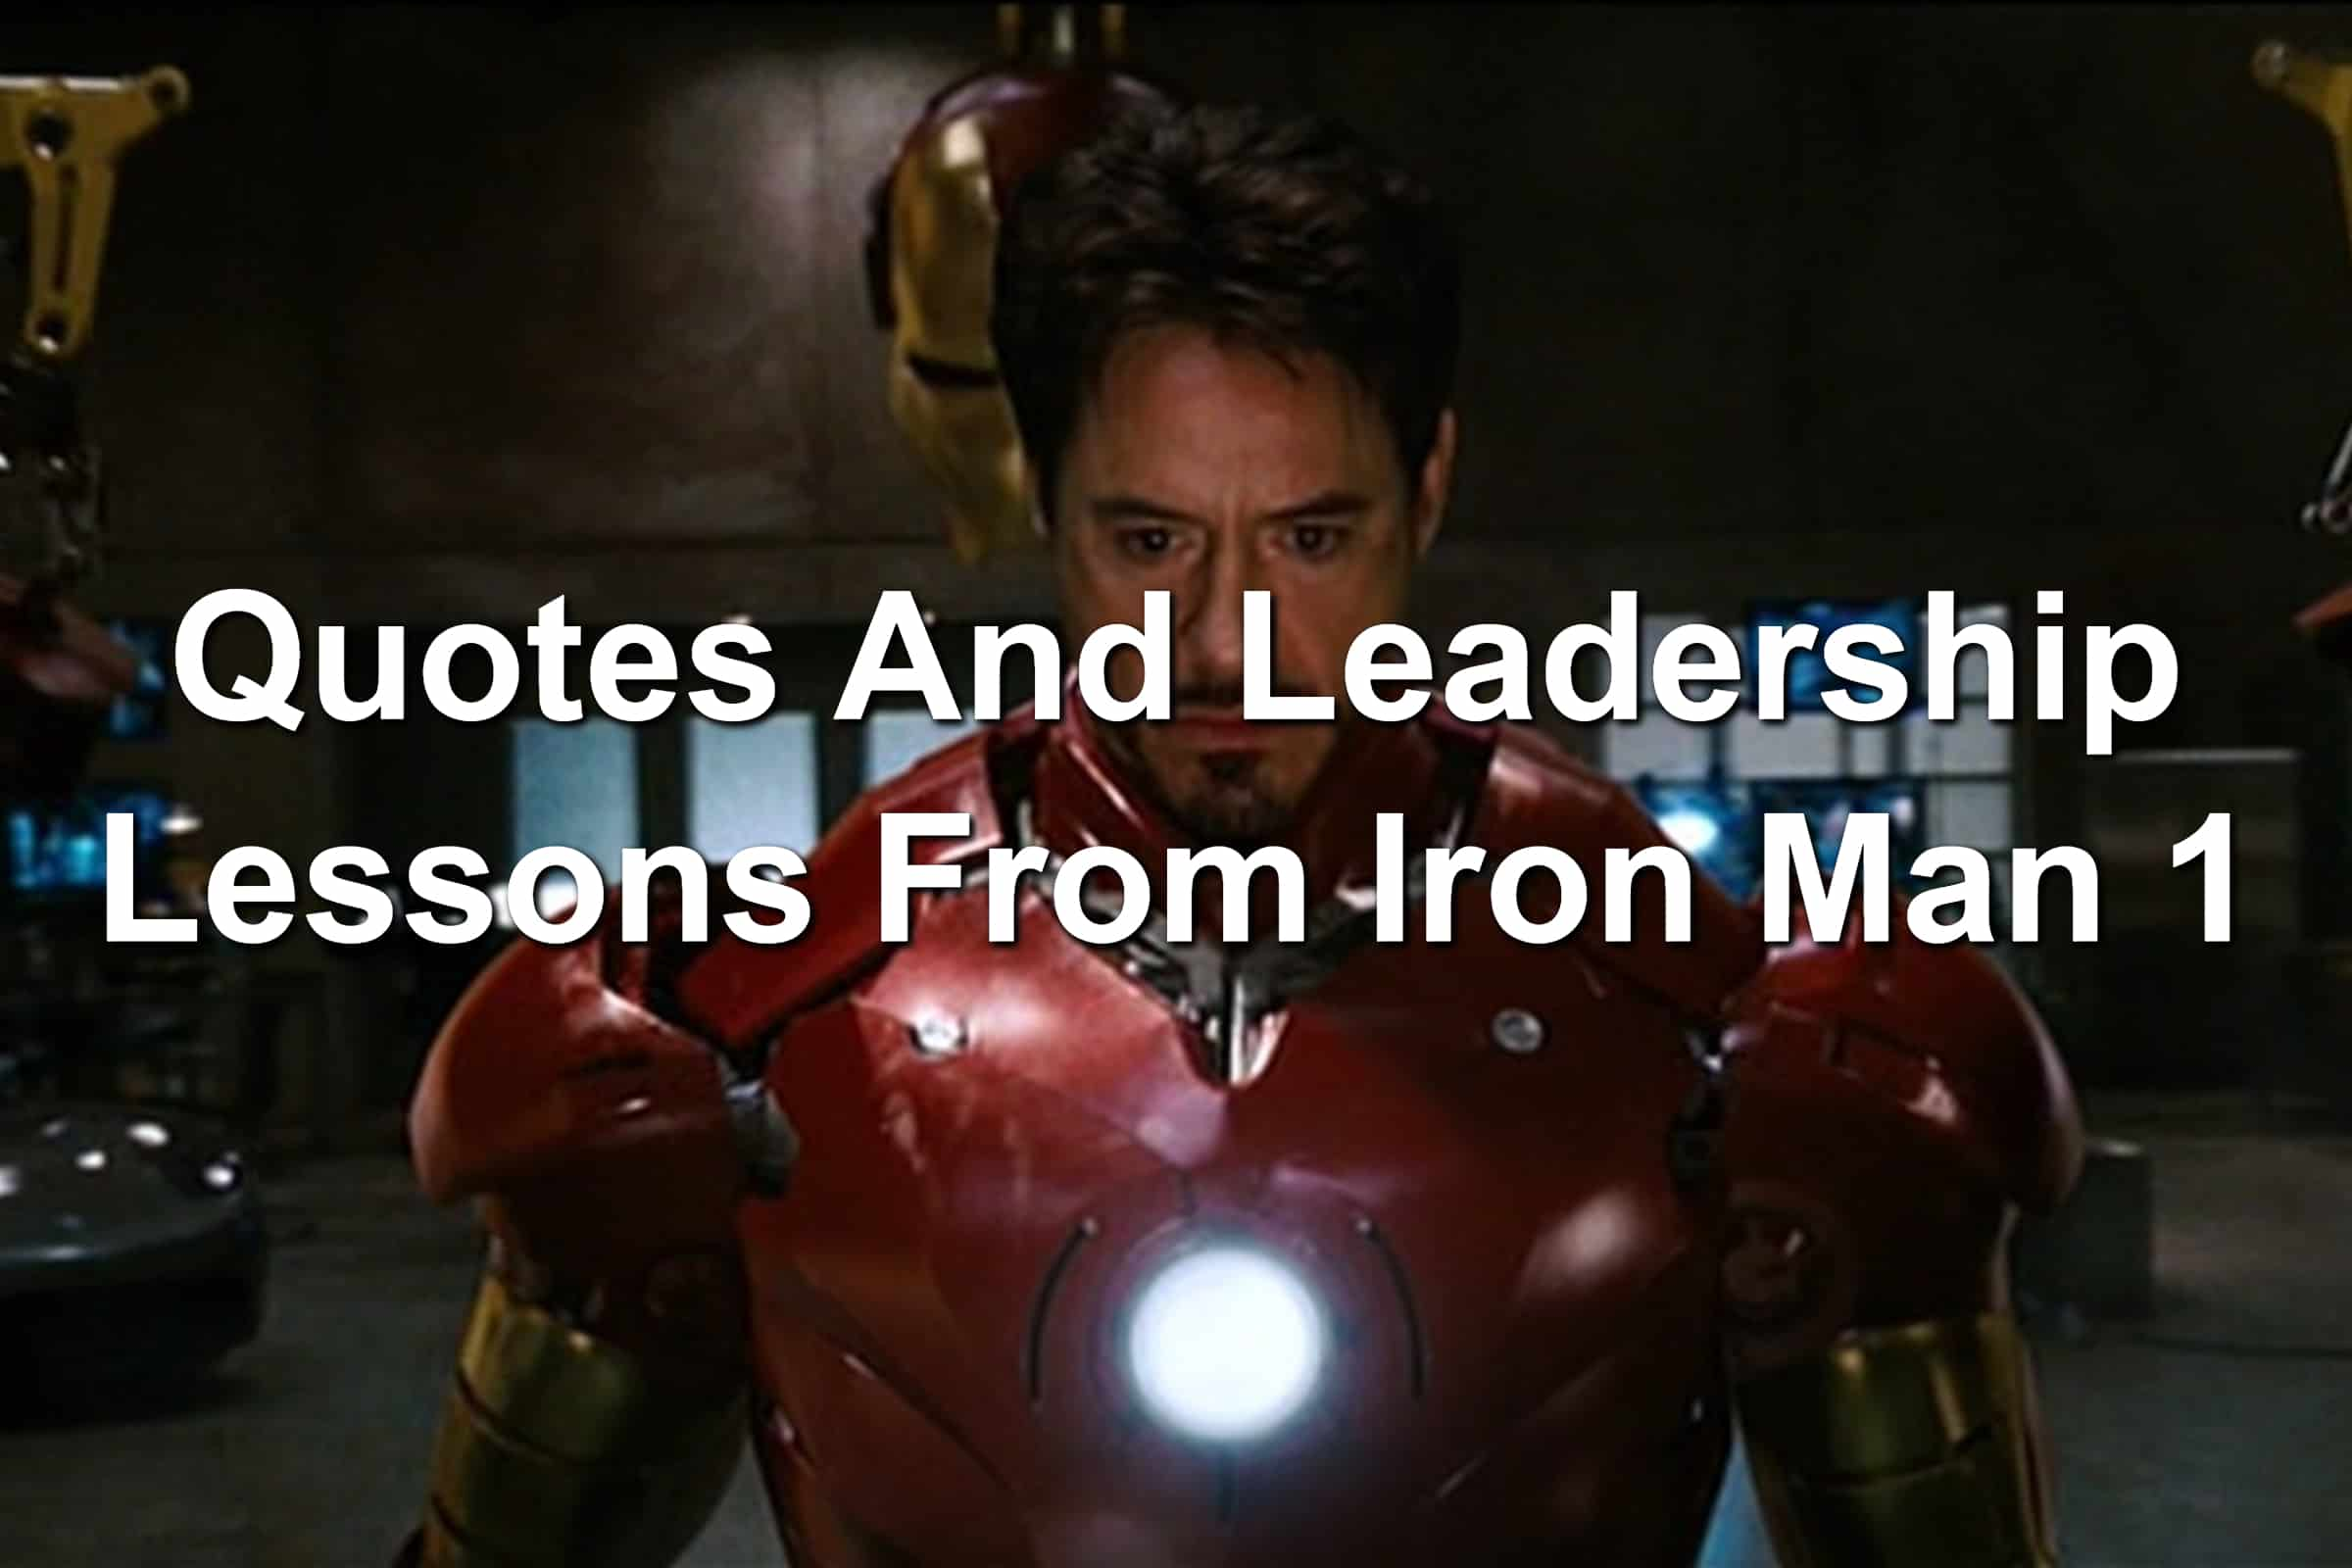 Robert Downey Junior as Iron Man in Iron Man 1